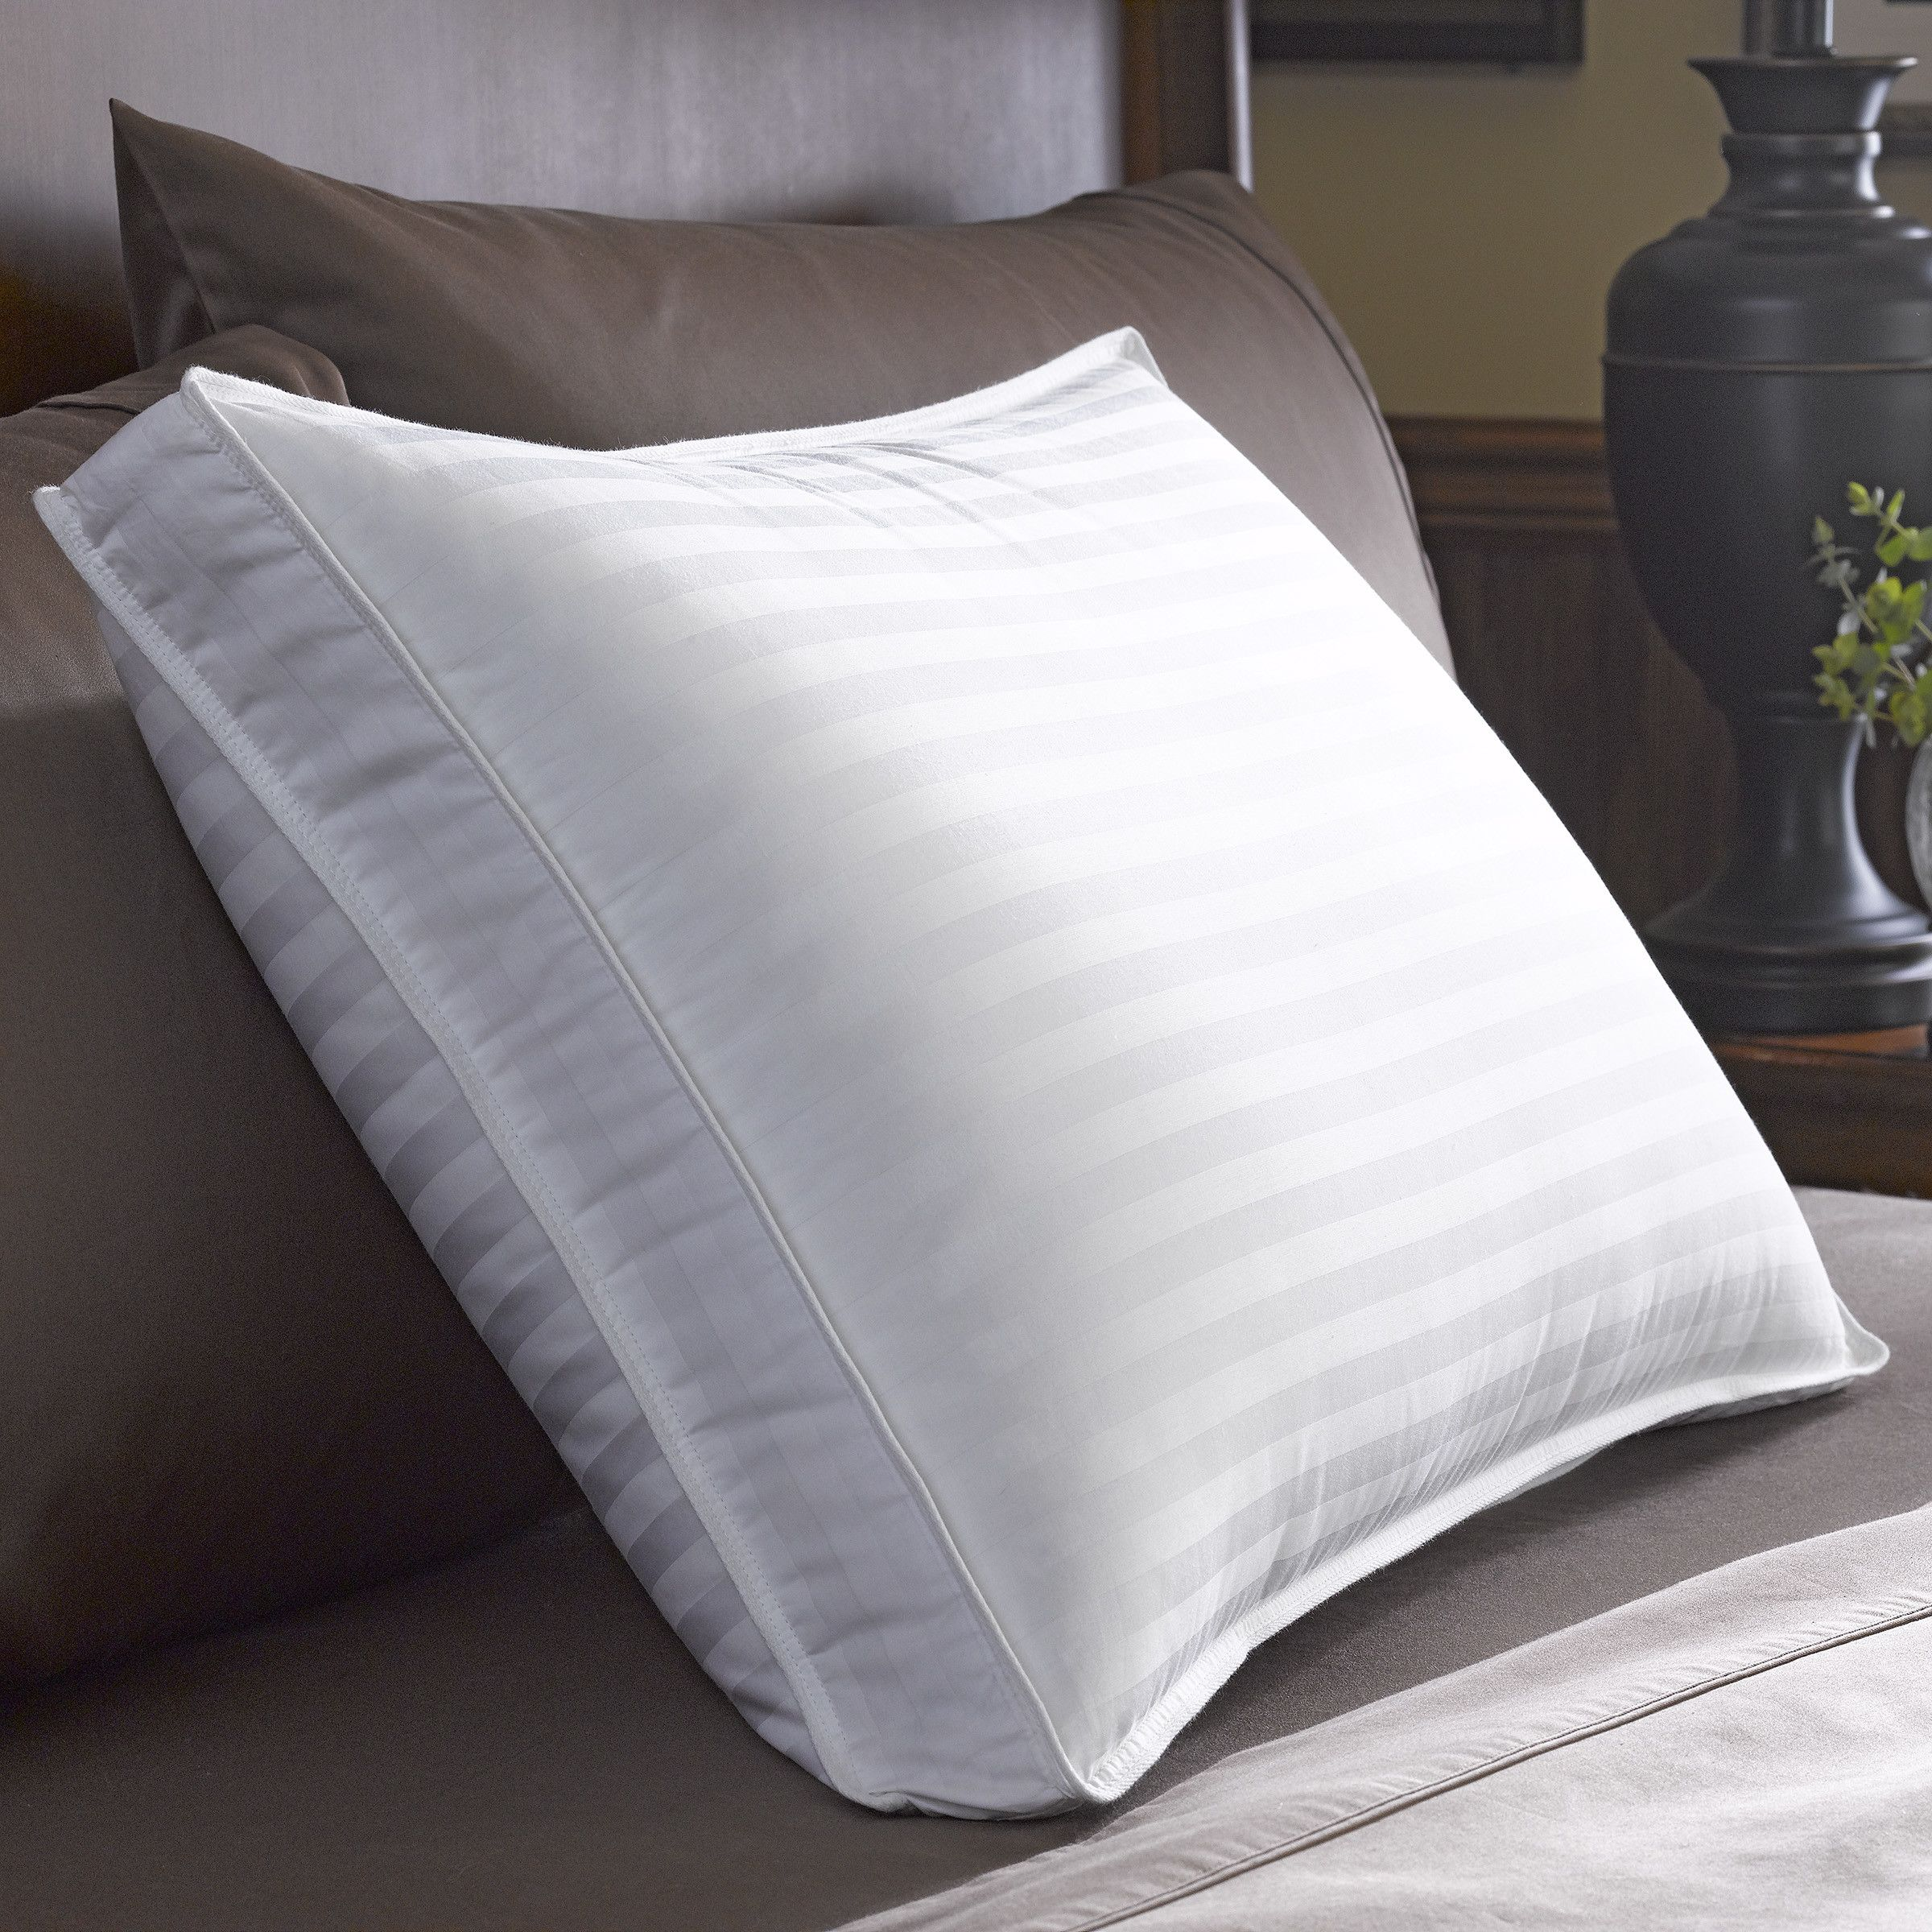 Medium Down And Feathers Bed Pillow Firm Pillows Feather Pillows Bed Pillows